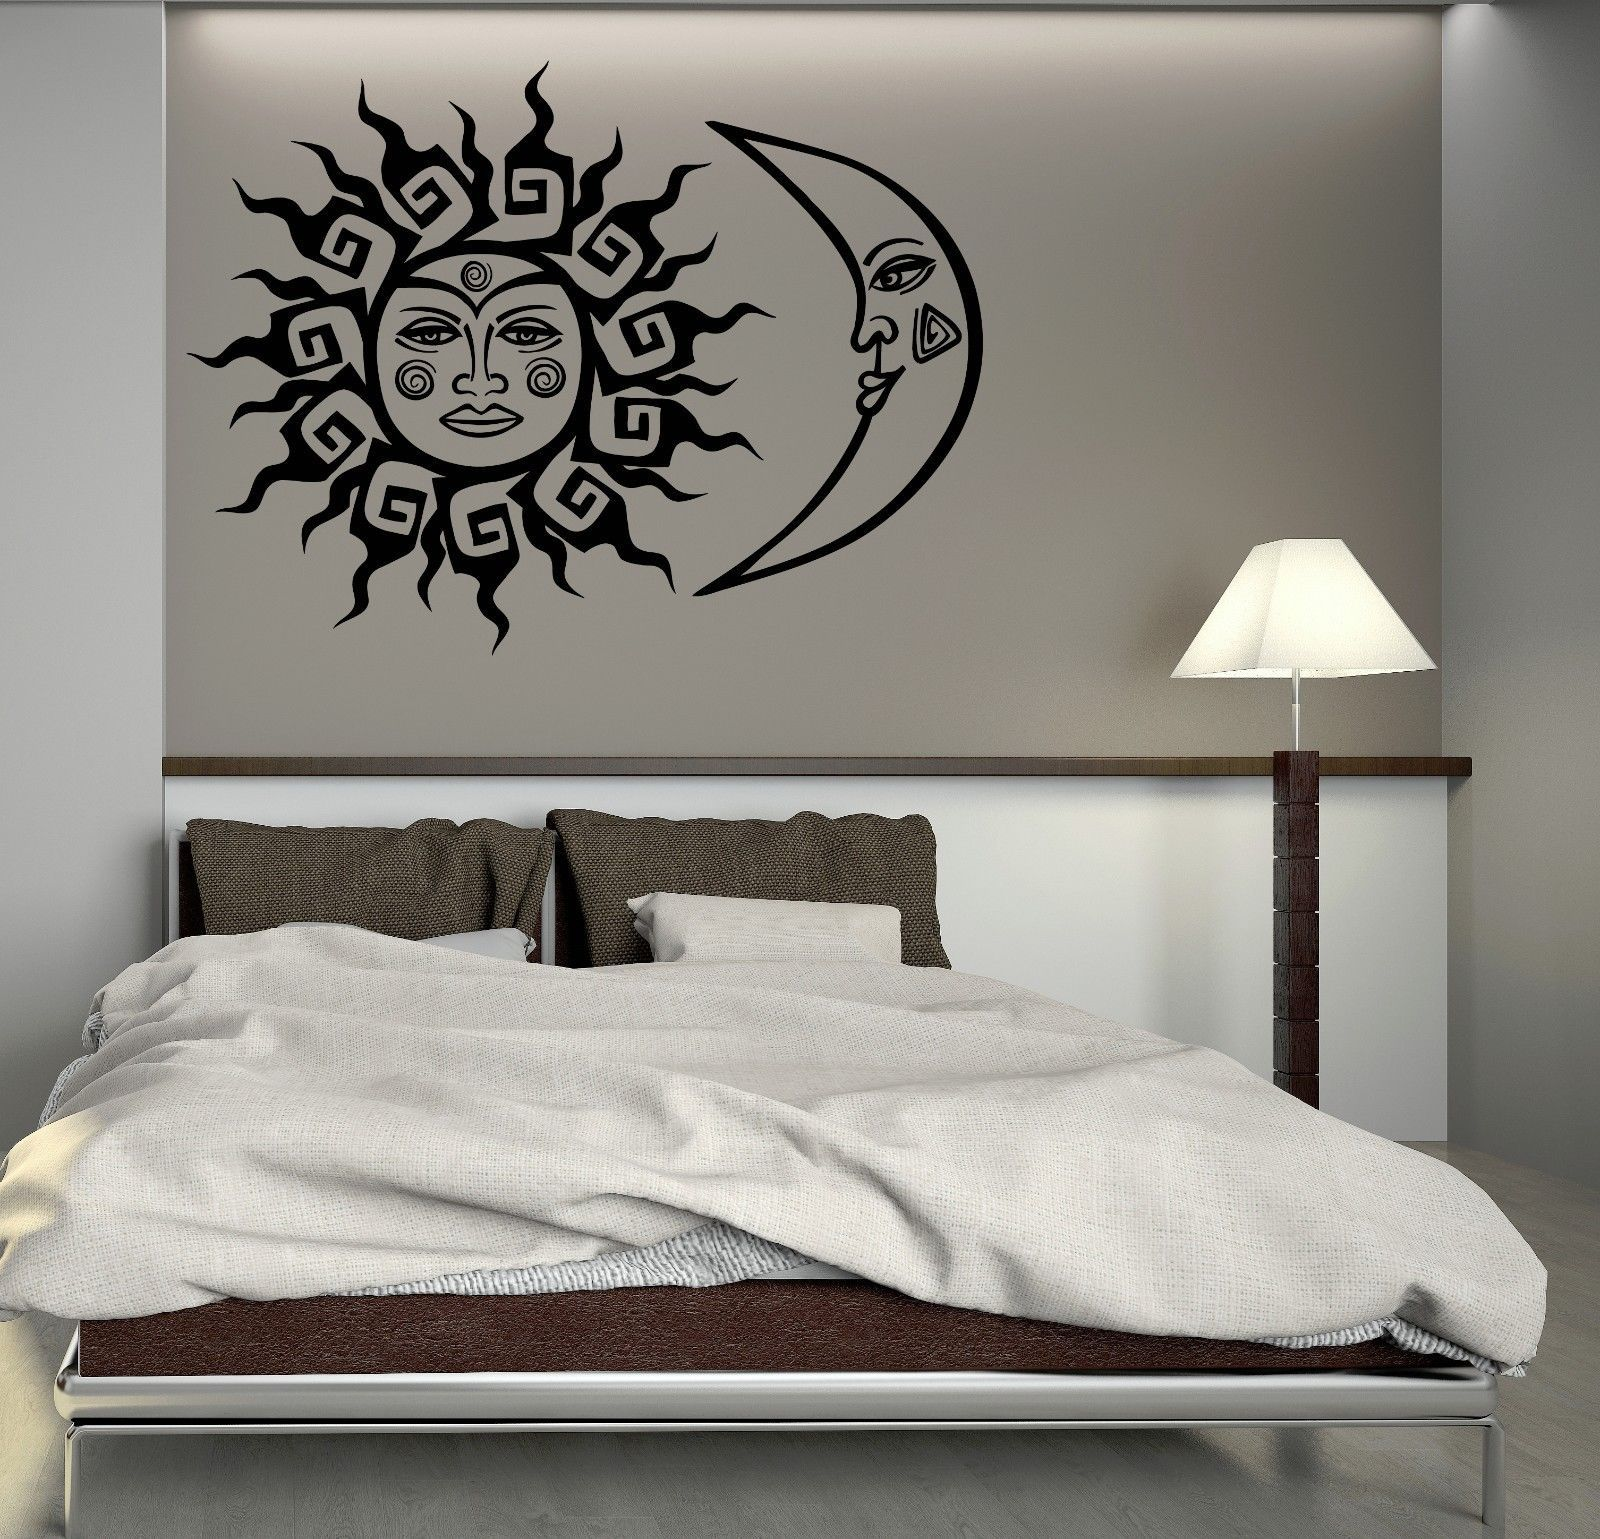 wall decal sun and moon fantastic bedroom decoration art vinyl stickers ig3037 decals. Black Bedroom Furniture Sets. Home Design Ideas